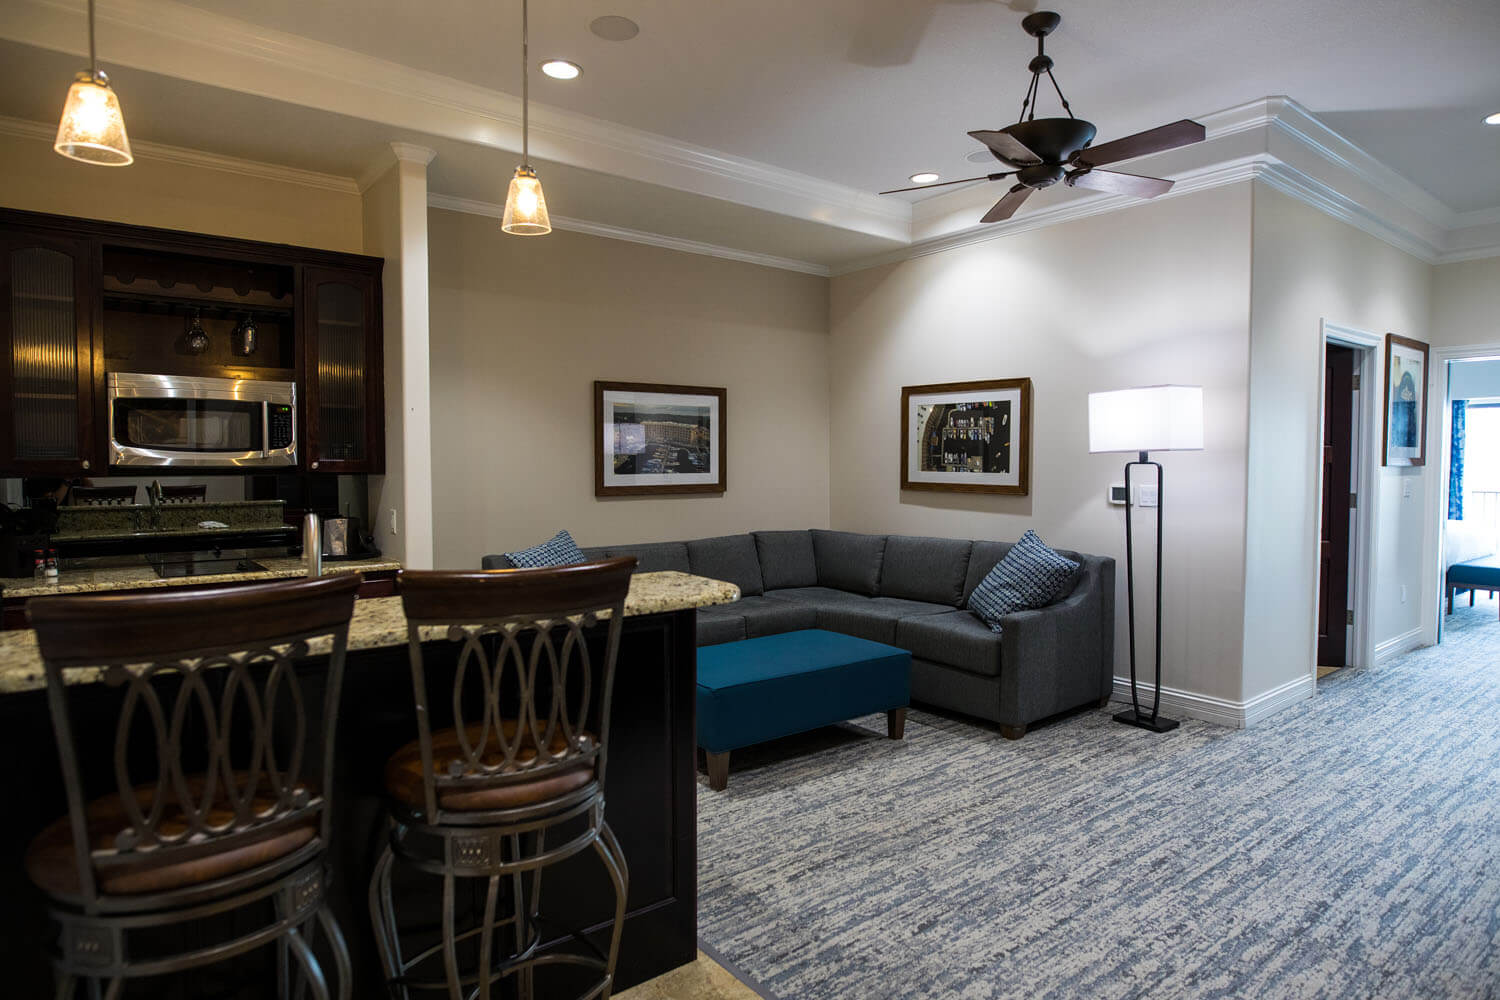 Living space featuring kitchenette seating, couch, and wall decor in suite at Camden on the Lake Resort Lake of the Ozarks